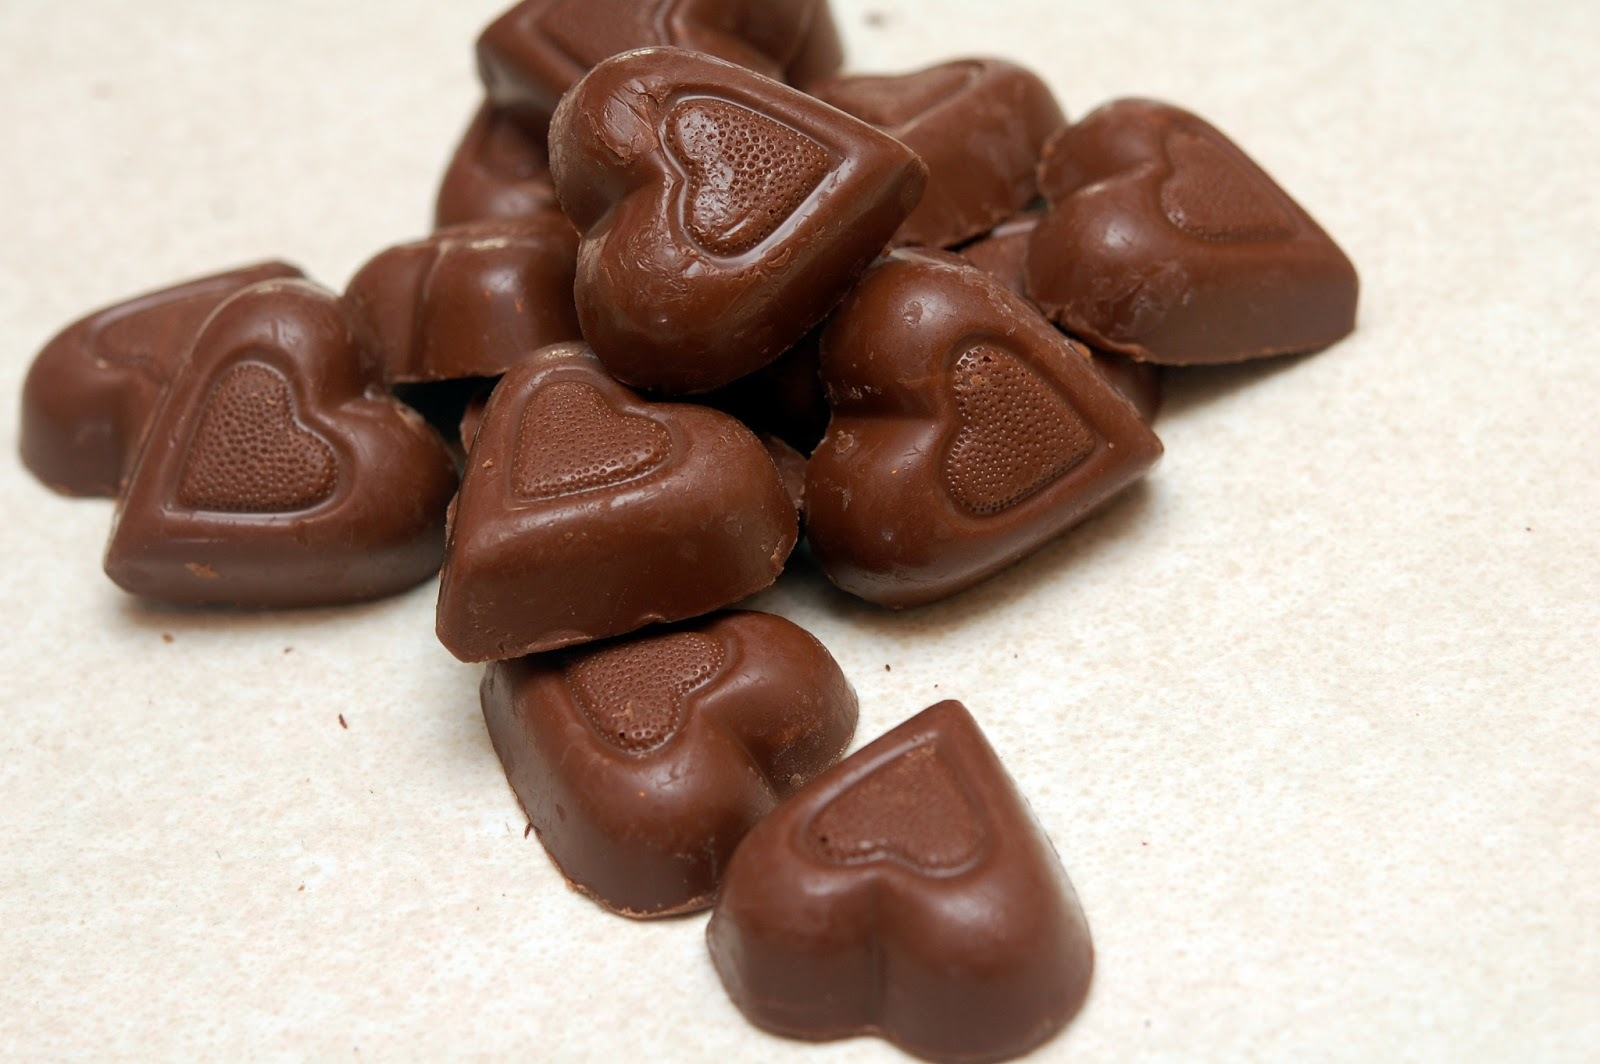 Pour in plastic molds for fun chocolate shapes and designs!